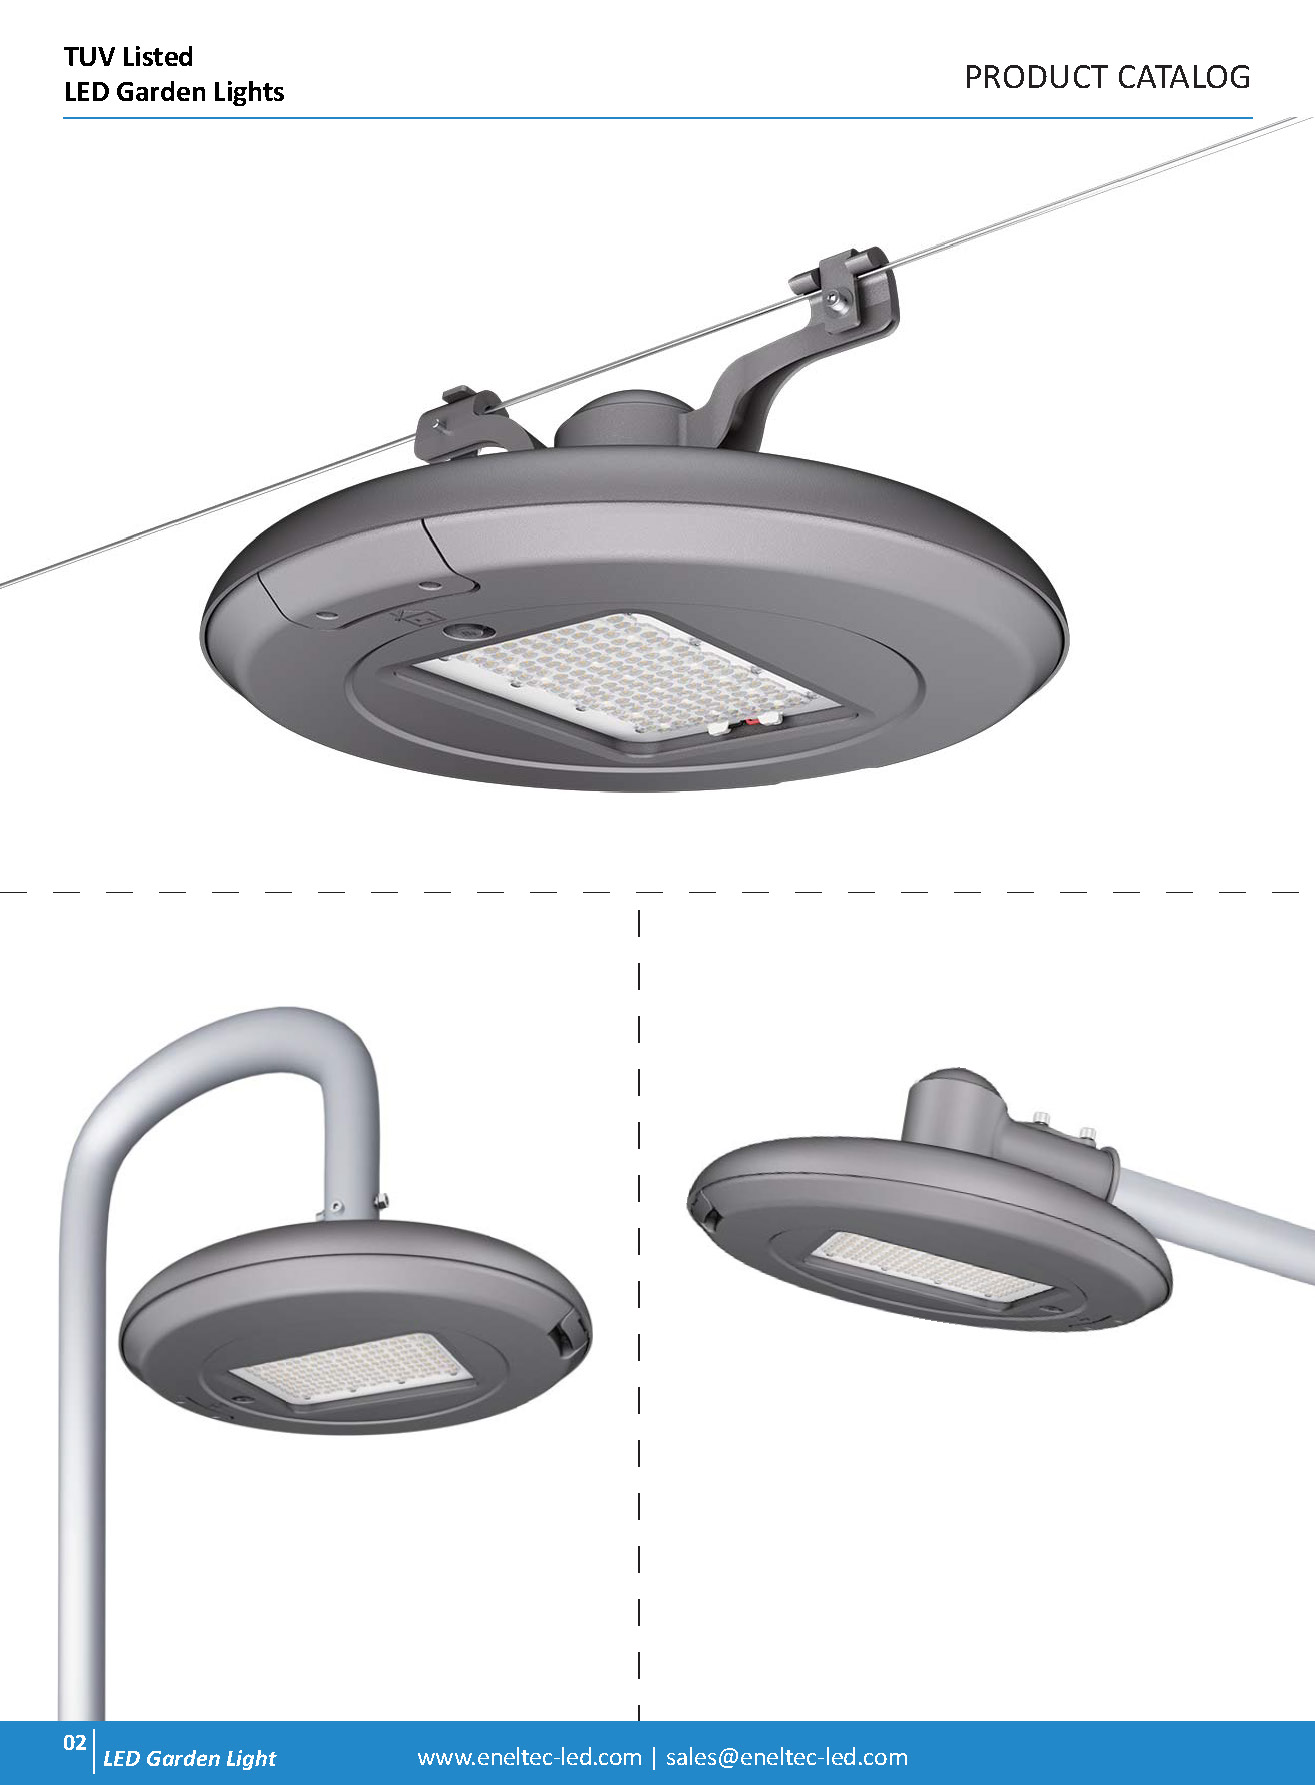 TUV Listed LED Garden Lights